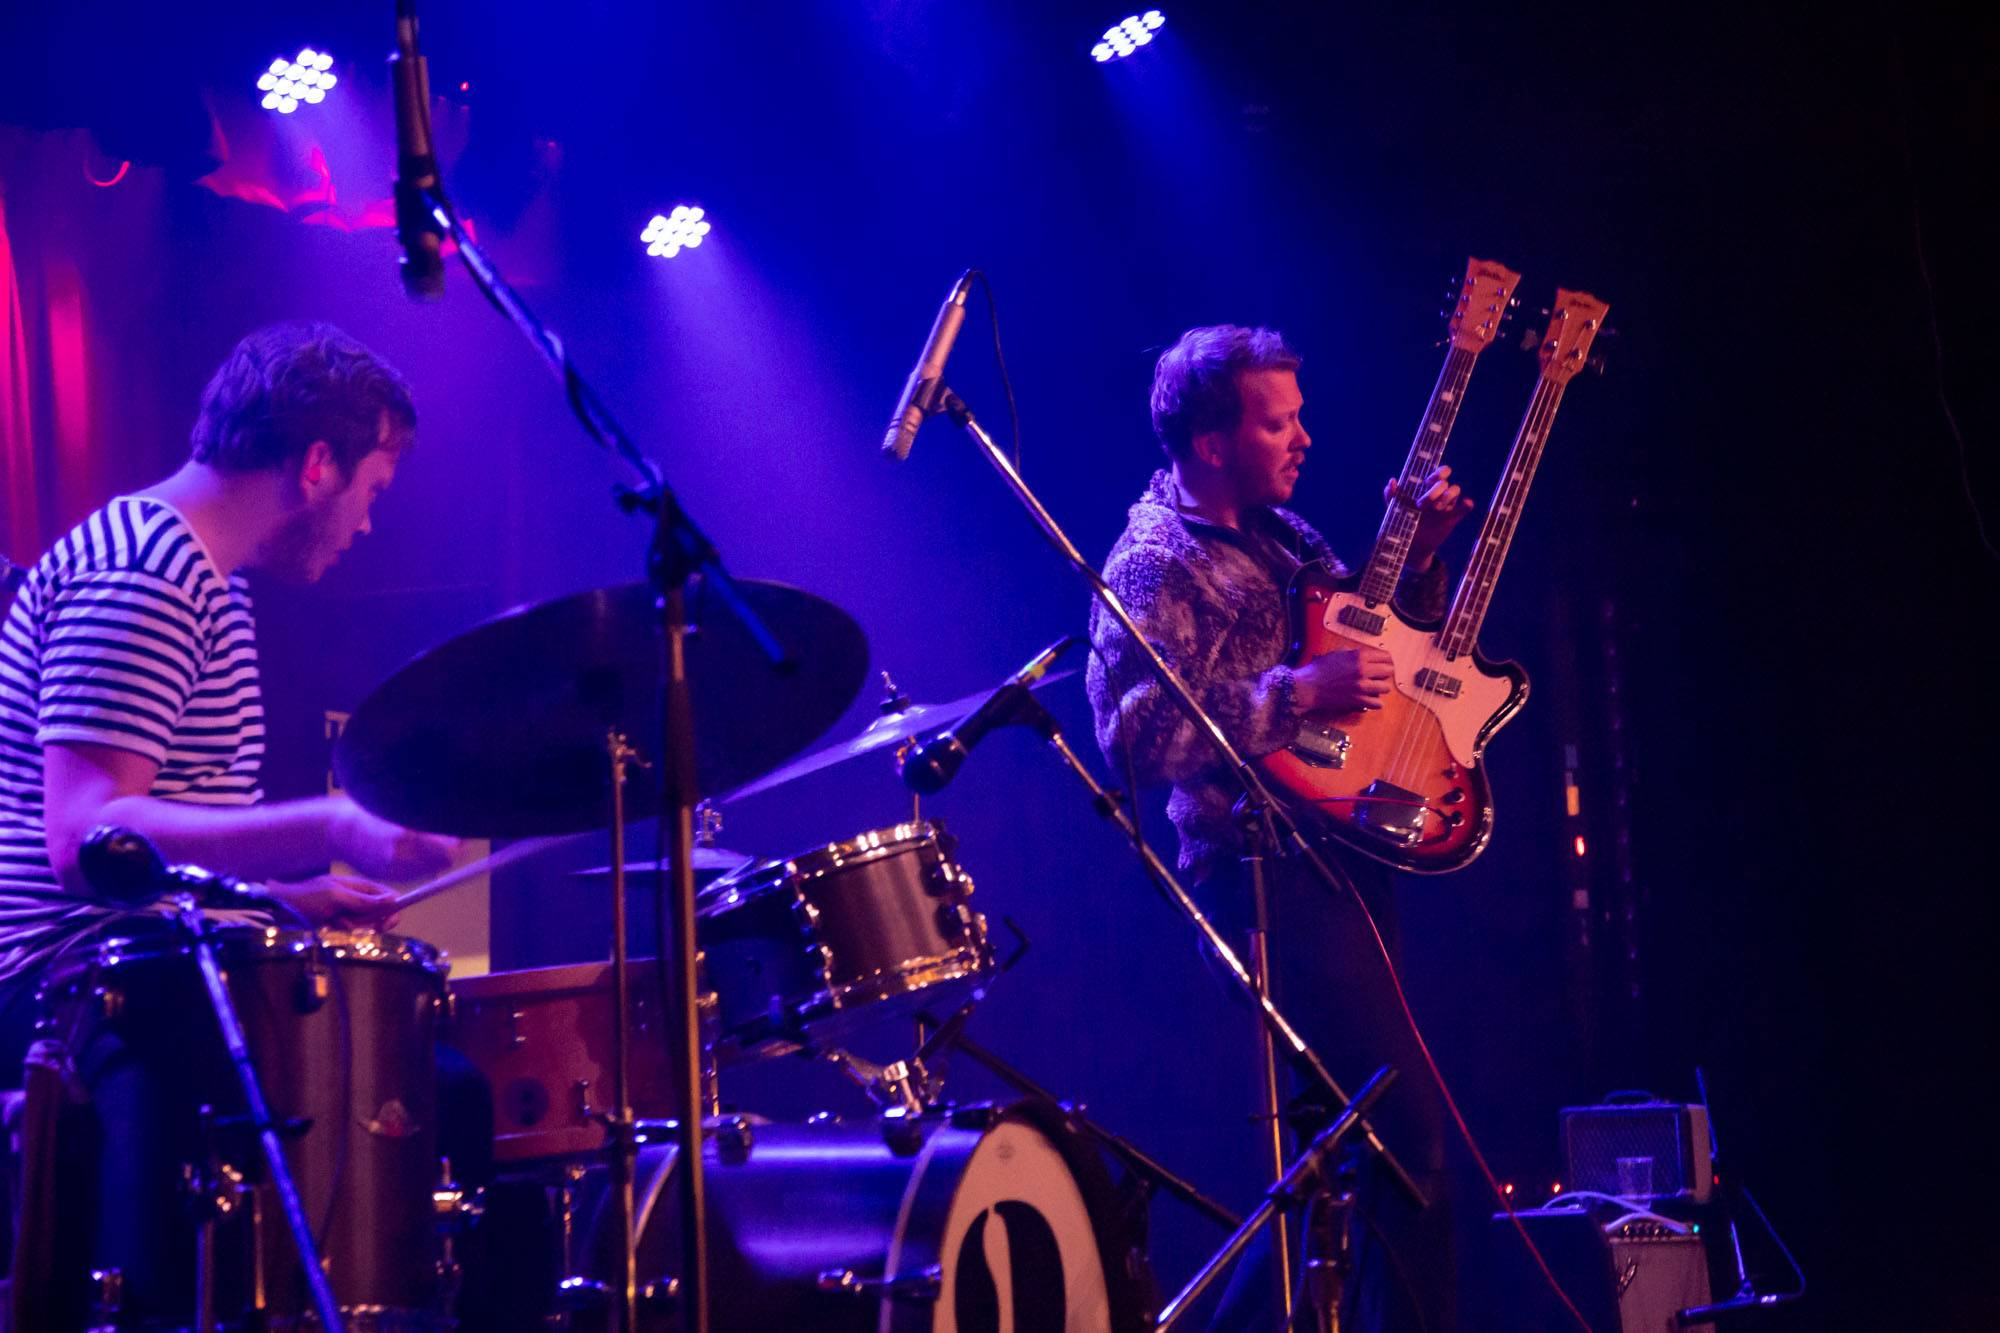 Mattson 2 at the Wise Hall, Vancouver, Sep 23 2018. Kirk Chantraine photo.